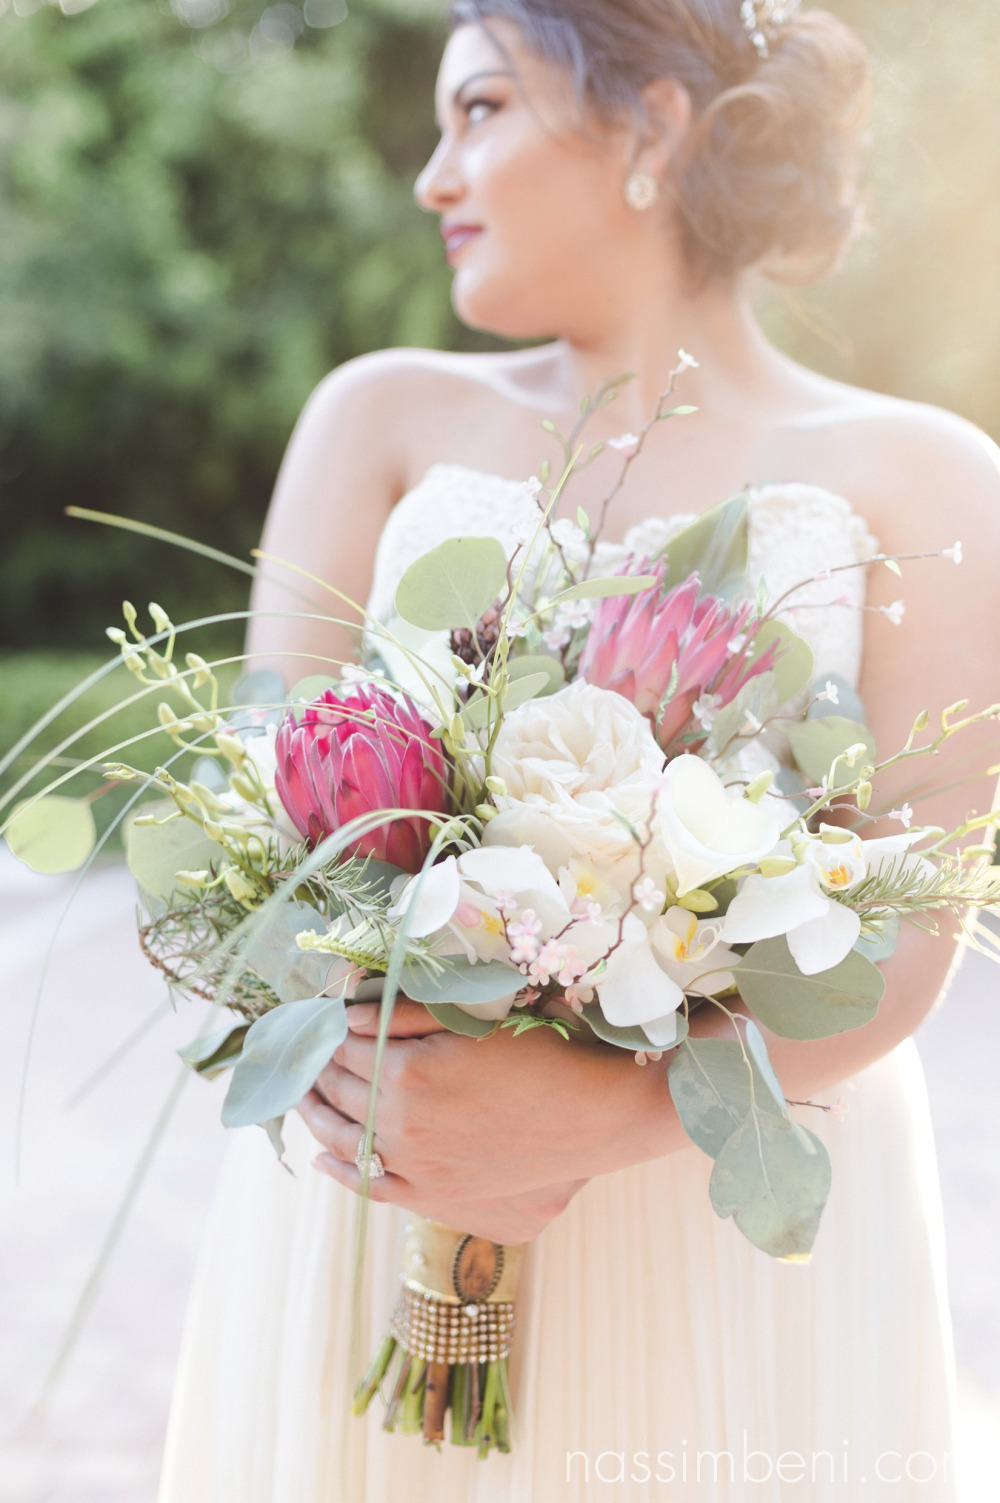 sarandipity florals bouquet for port st lucie wedding photographer nassimbeni photography